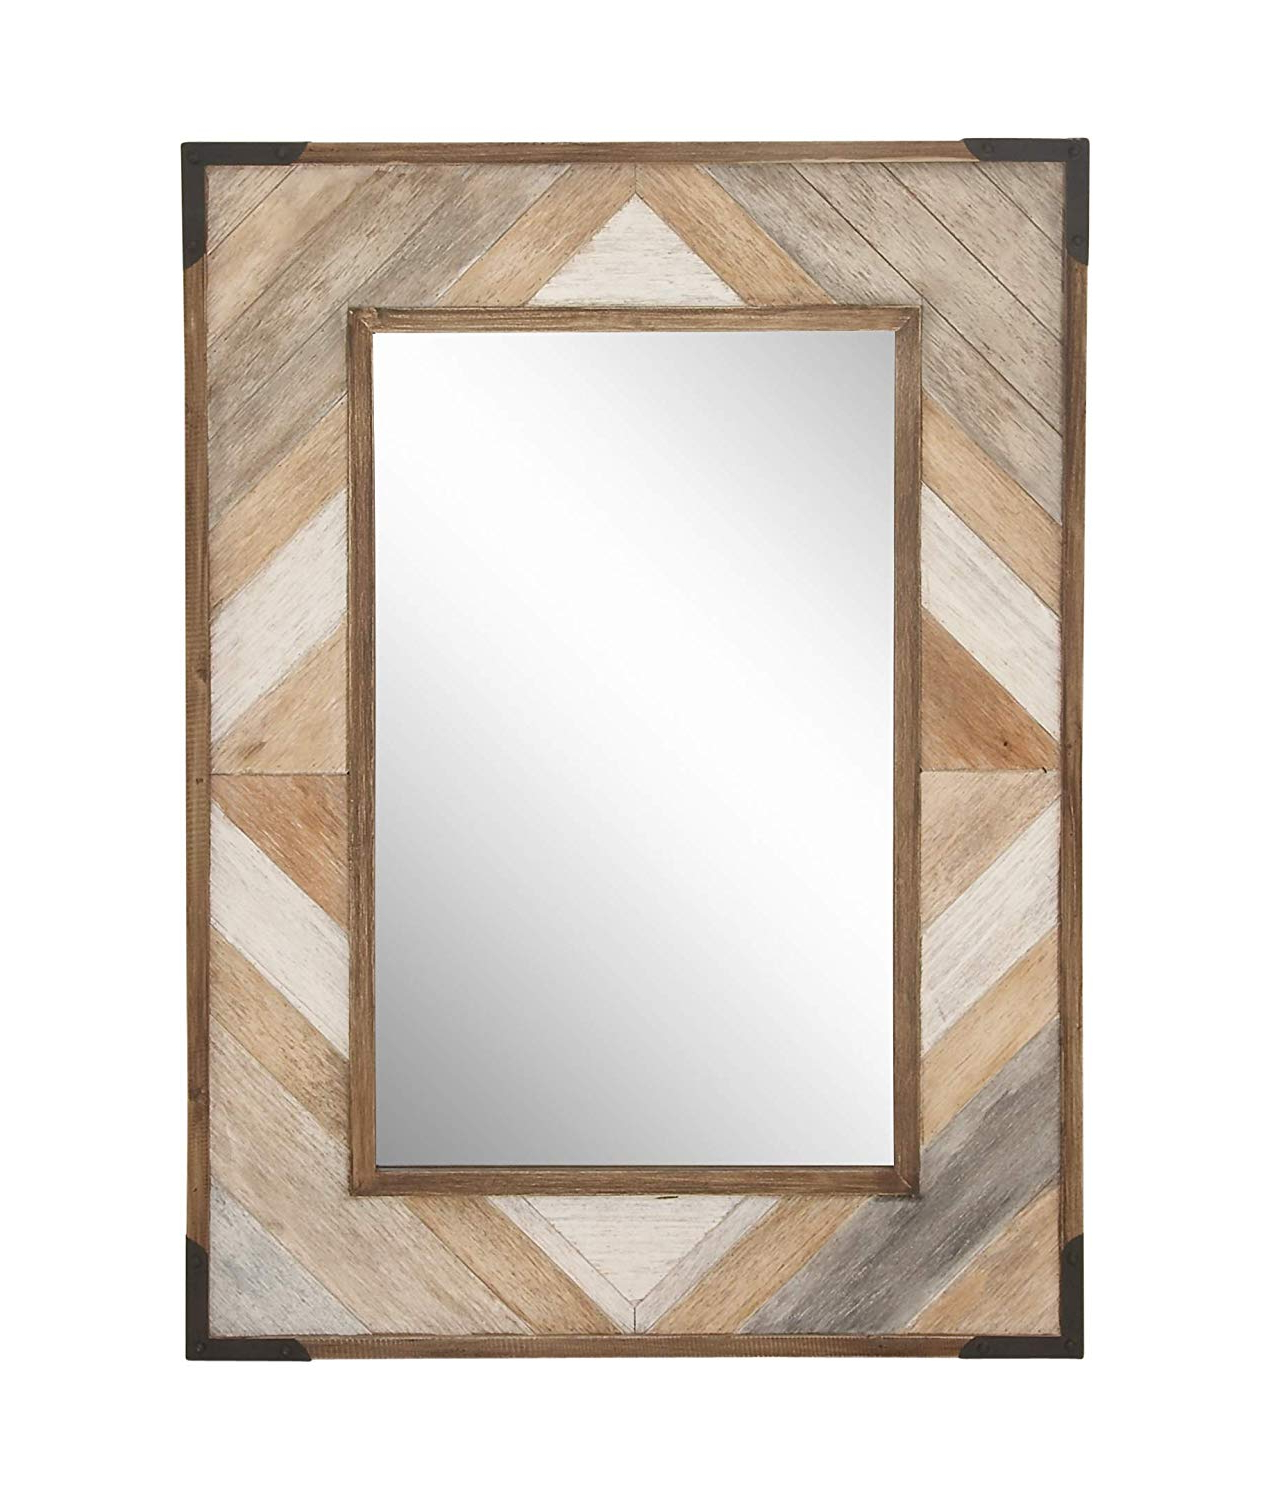 "2019 Wooden Wall Mirrors Pertaining To Deco 79 44453 Wooden Wall Mirror, 38"" X 28"", Brown/white/gray (View 13 of 20)"